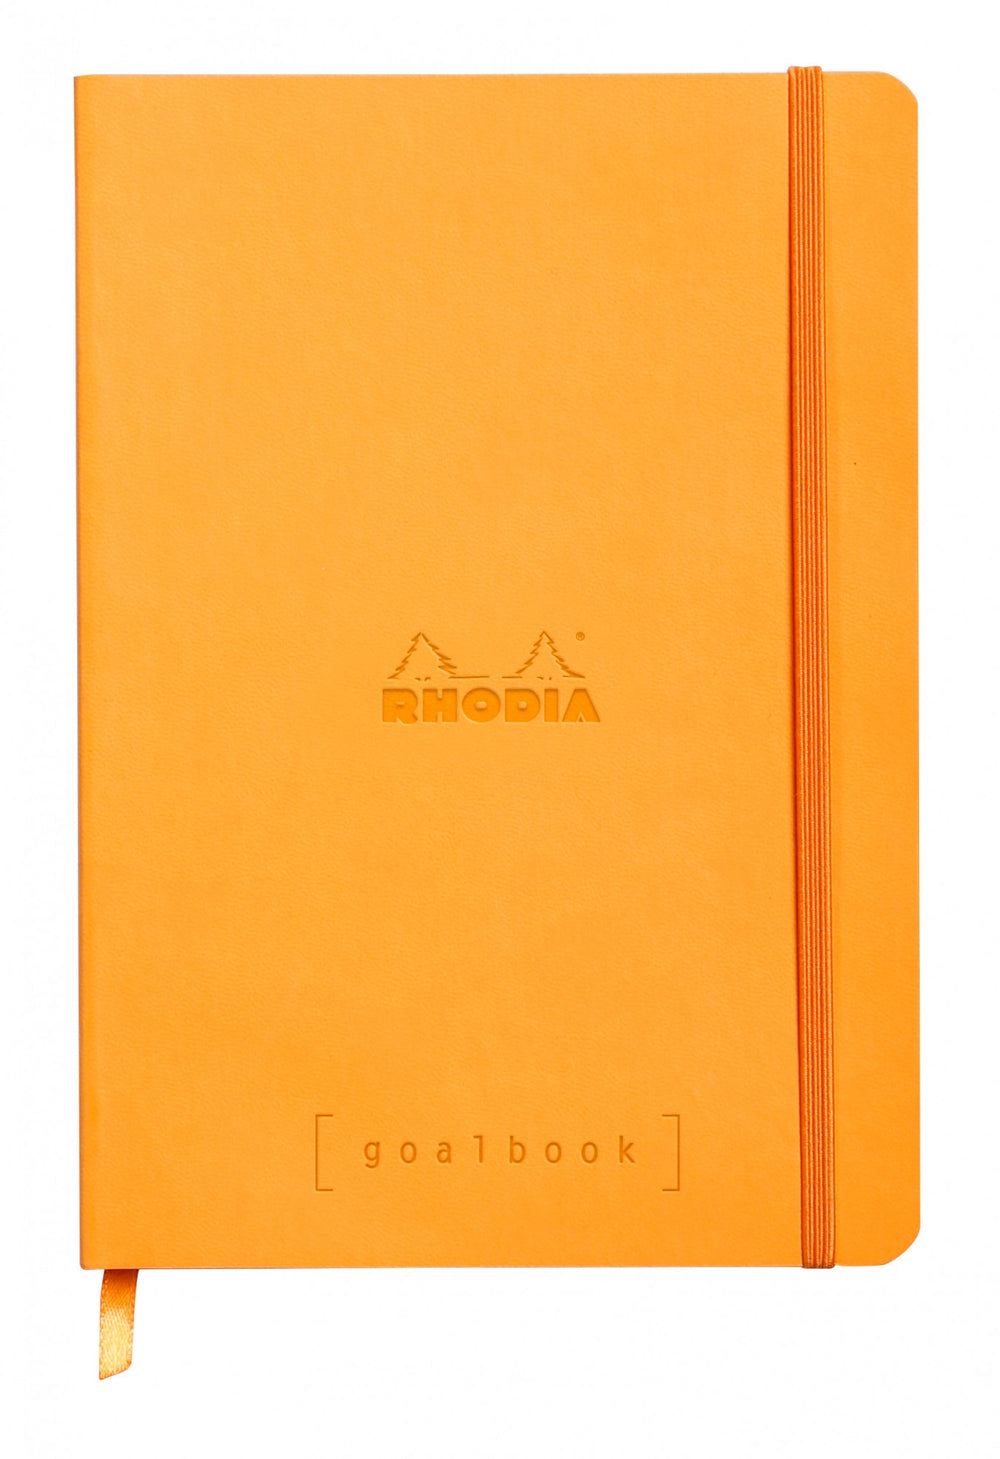 Rhodia Goalbook Orange